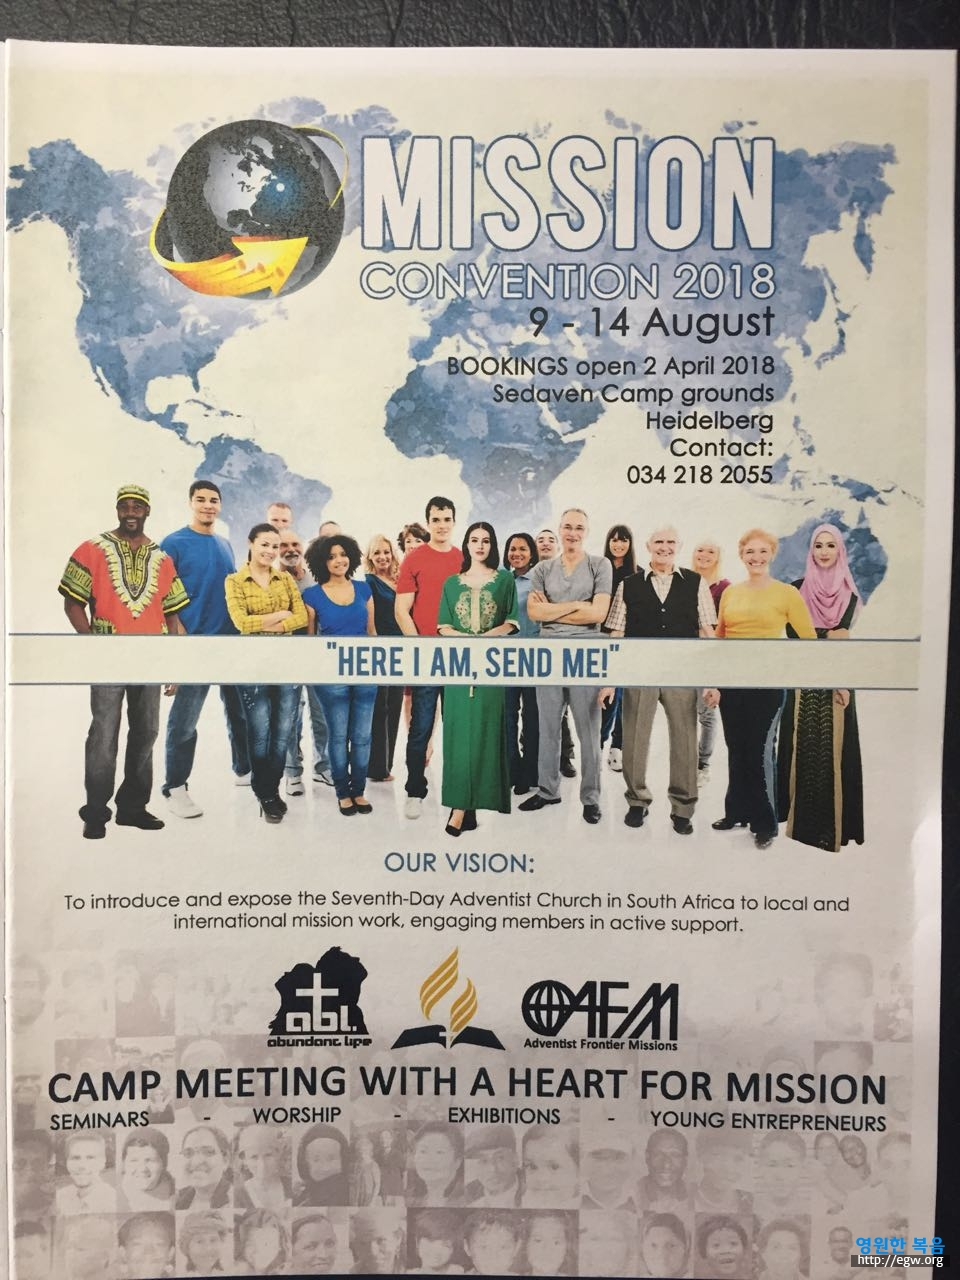 Mission Convention 2018 the 9th to 14th of August Heidelberg South Africa.jpg